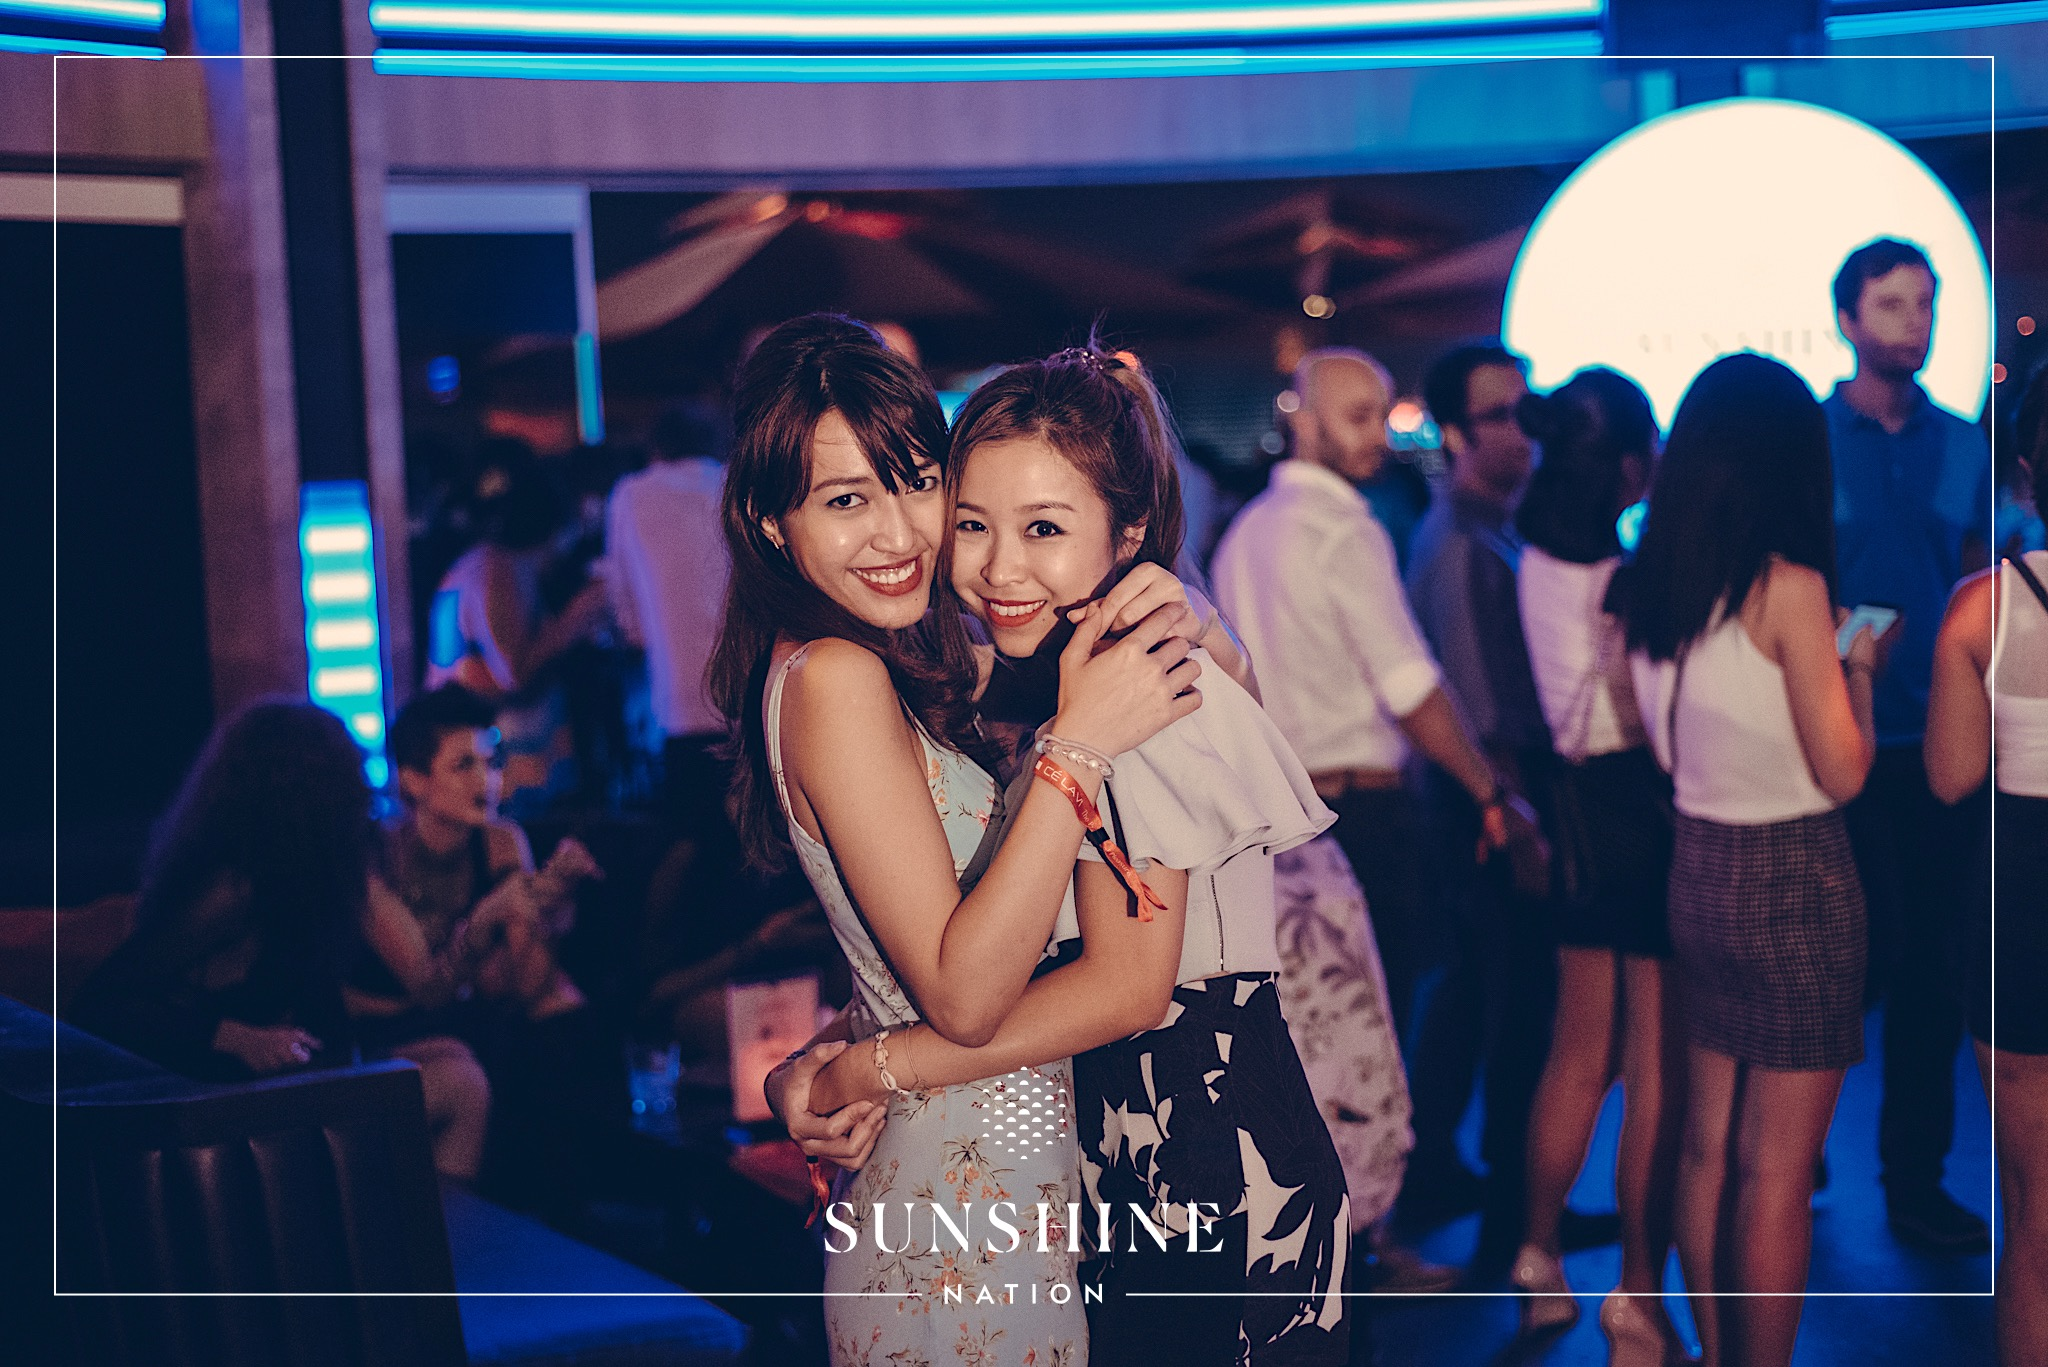 17092017_SunshineNation_Colossal117_Watermarked.jpg